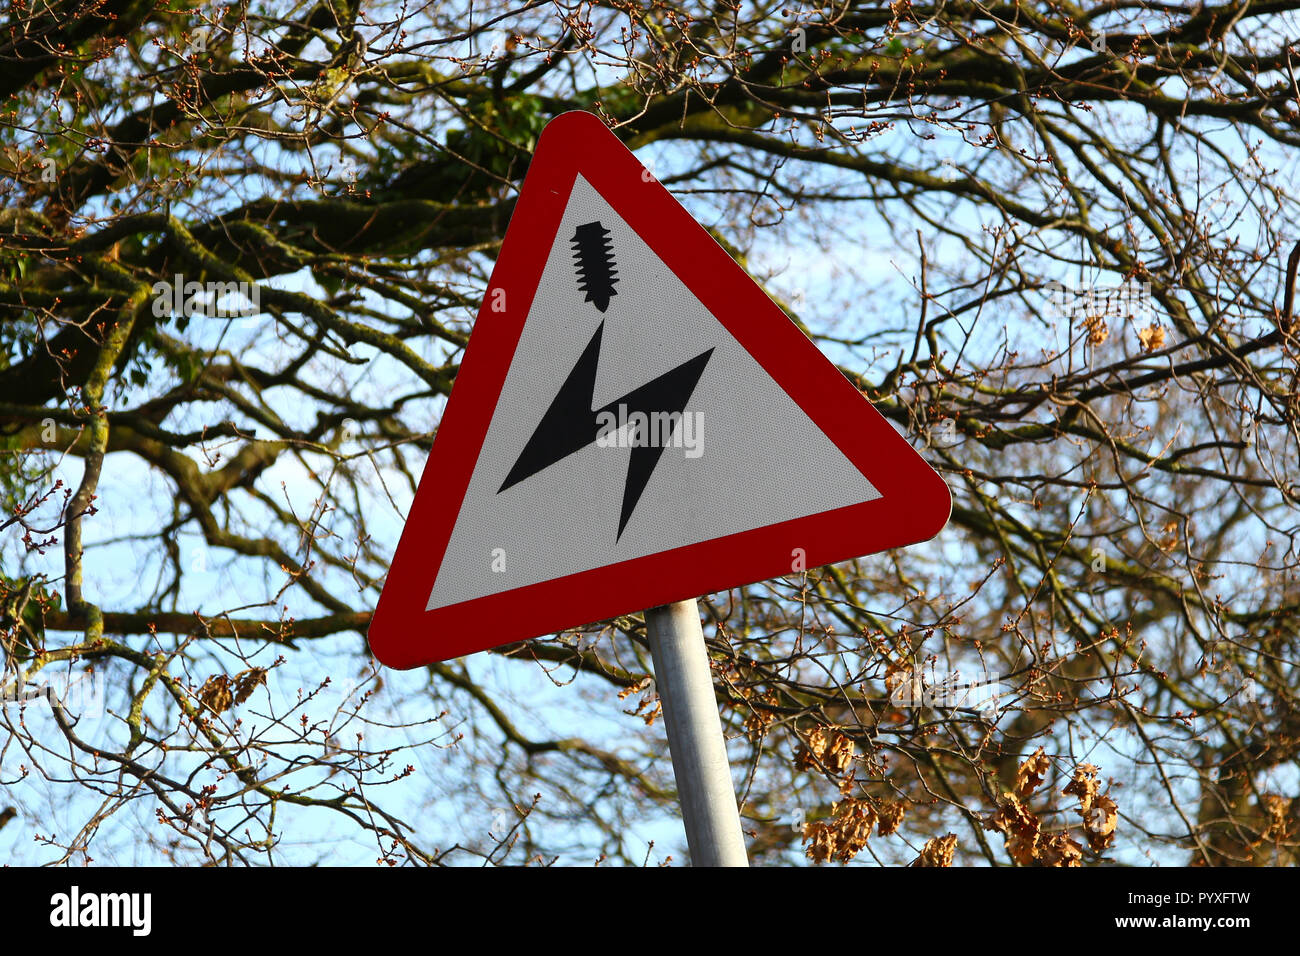 A triangular road sign warning of overhead electric power lines, England, UK - Stock Image